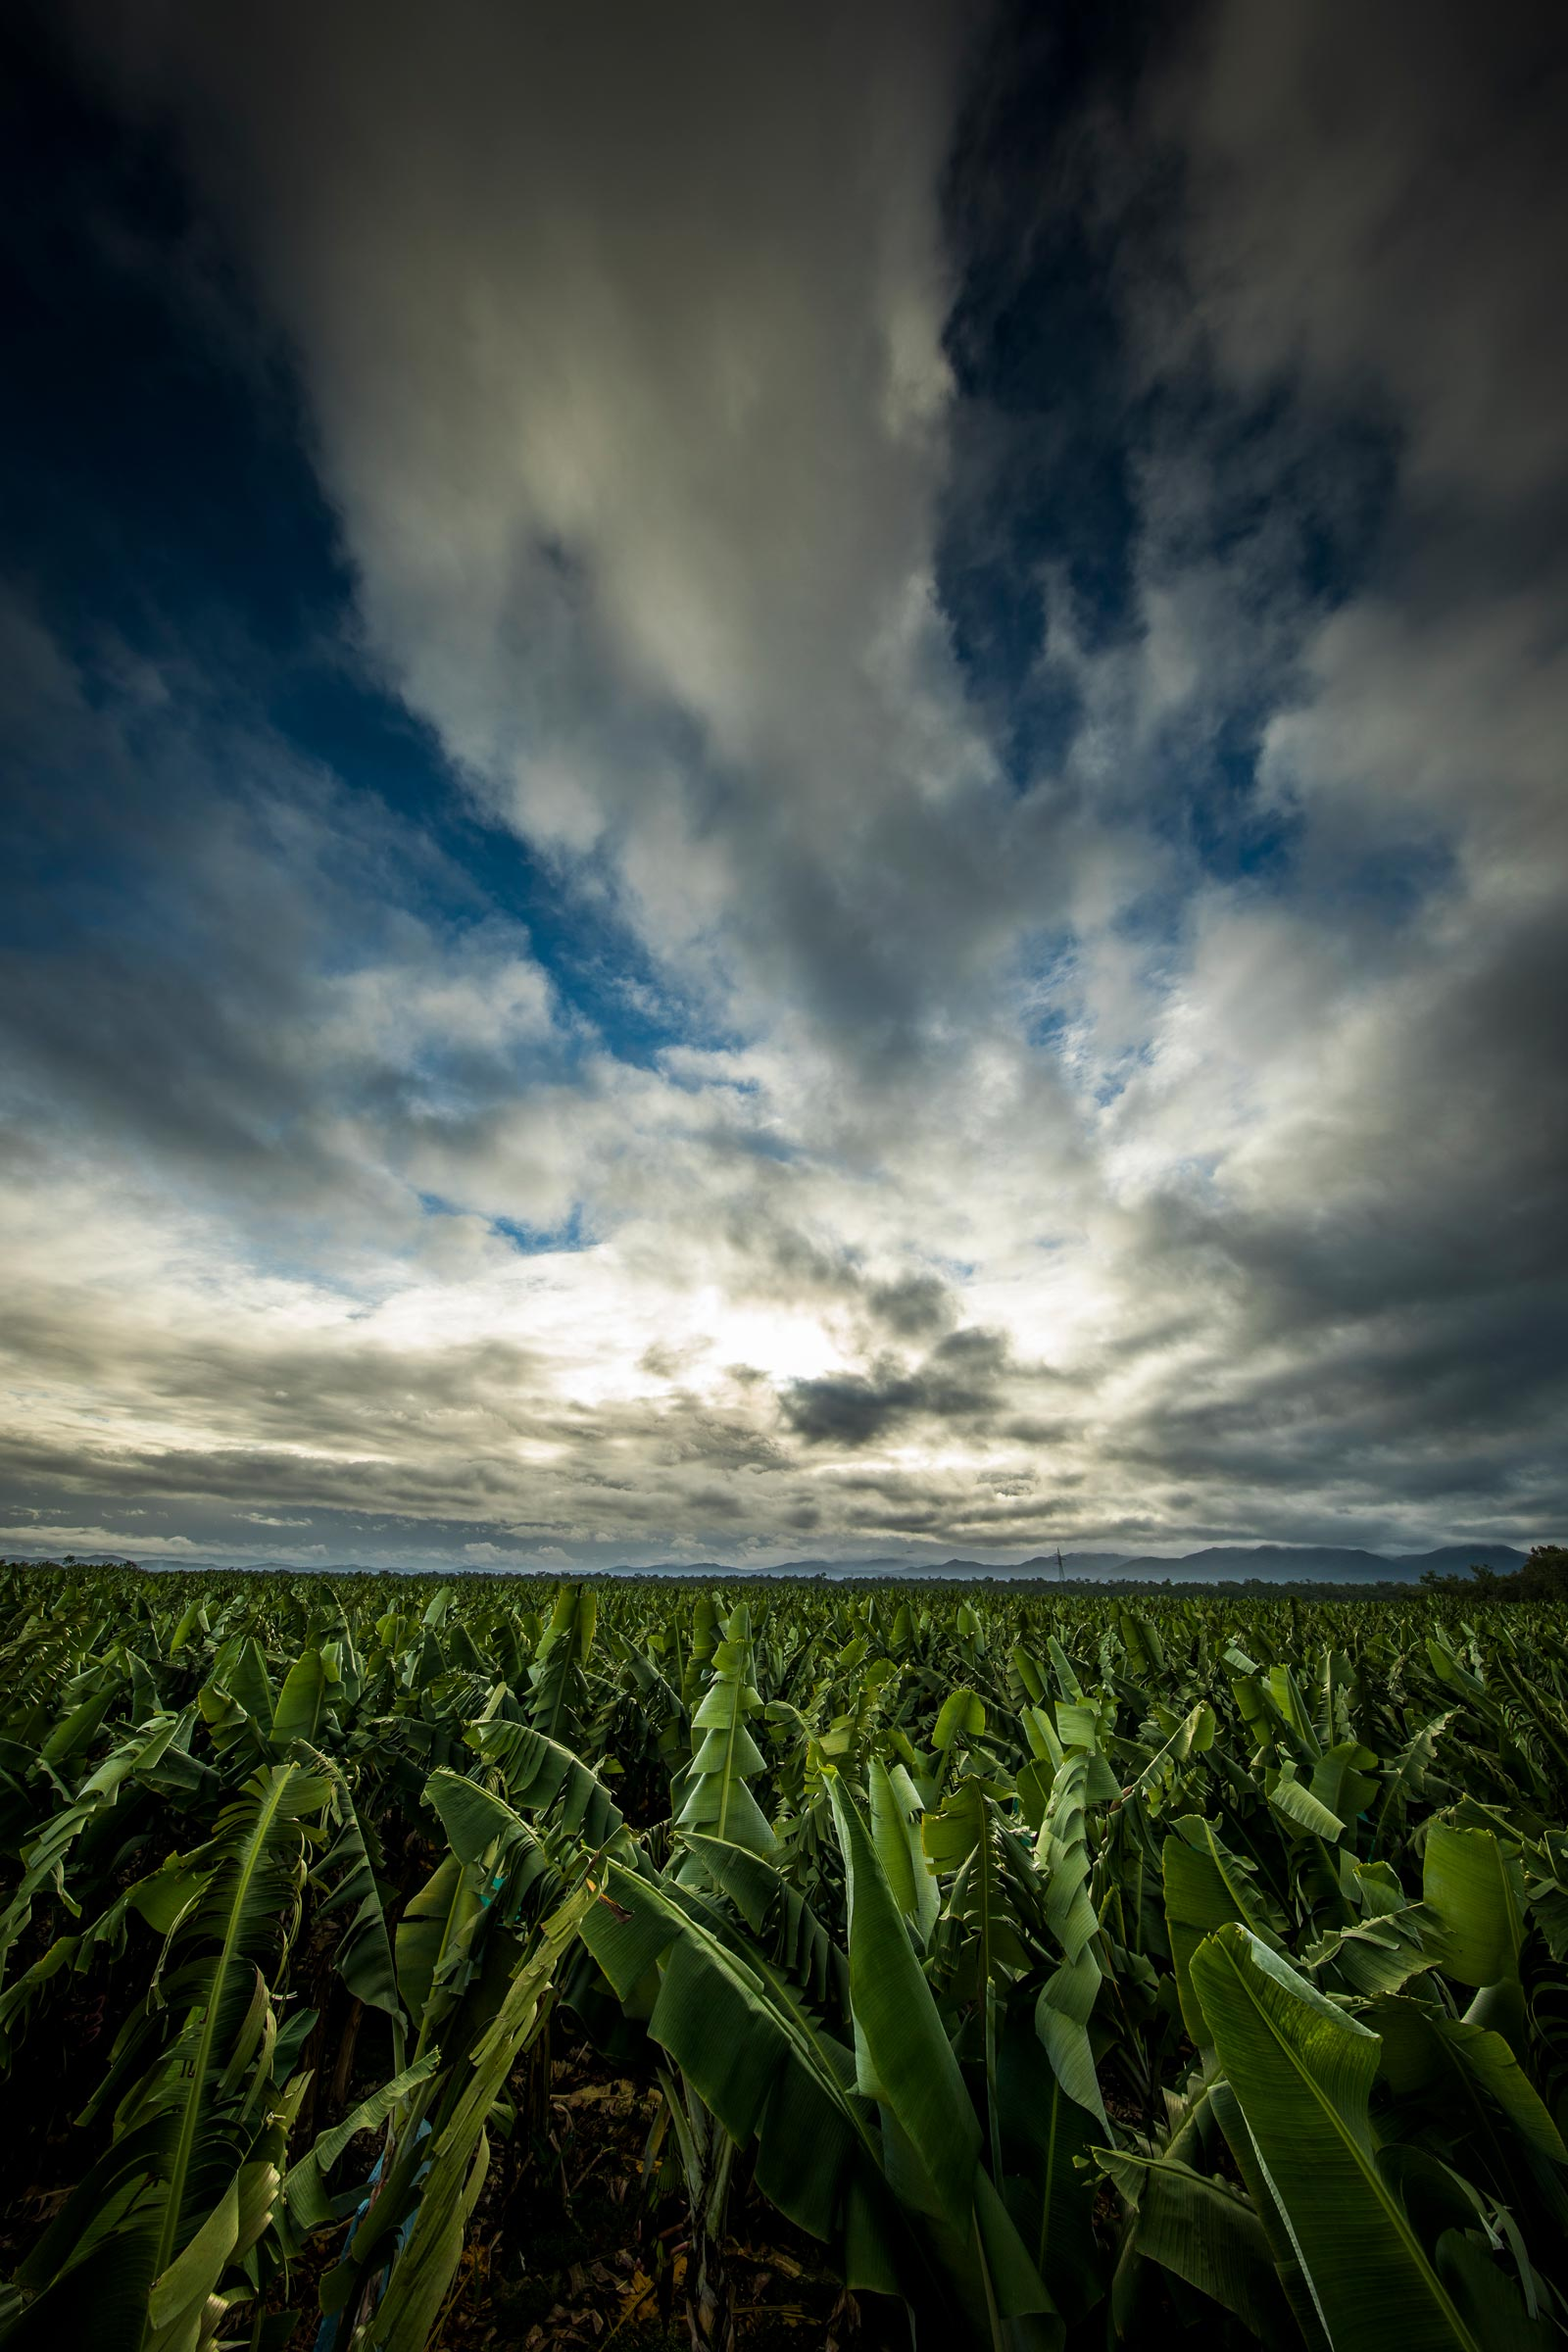 banana plantation landscape with blue sky and clouds